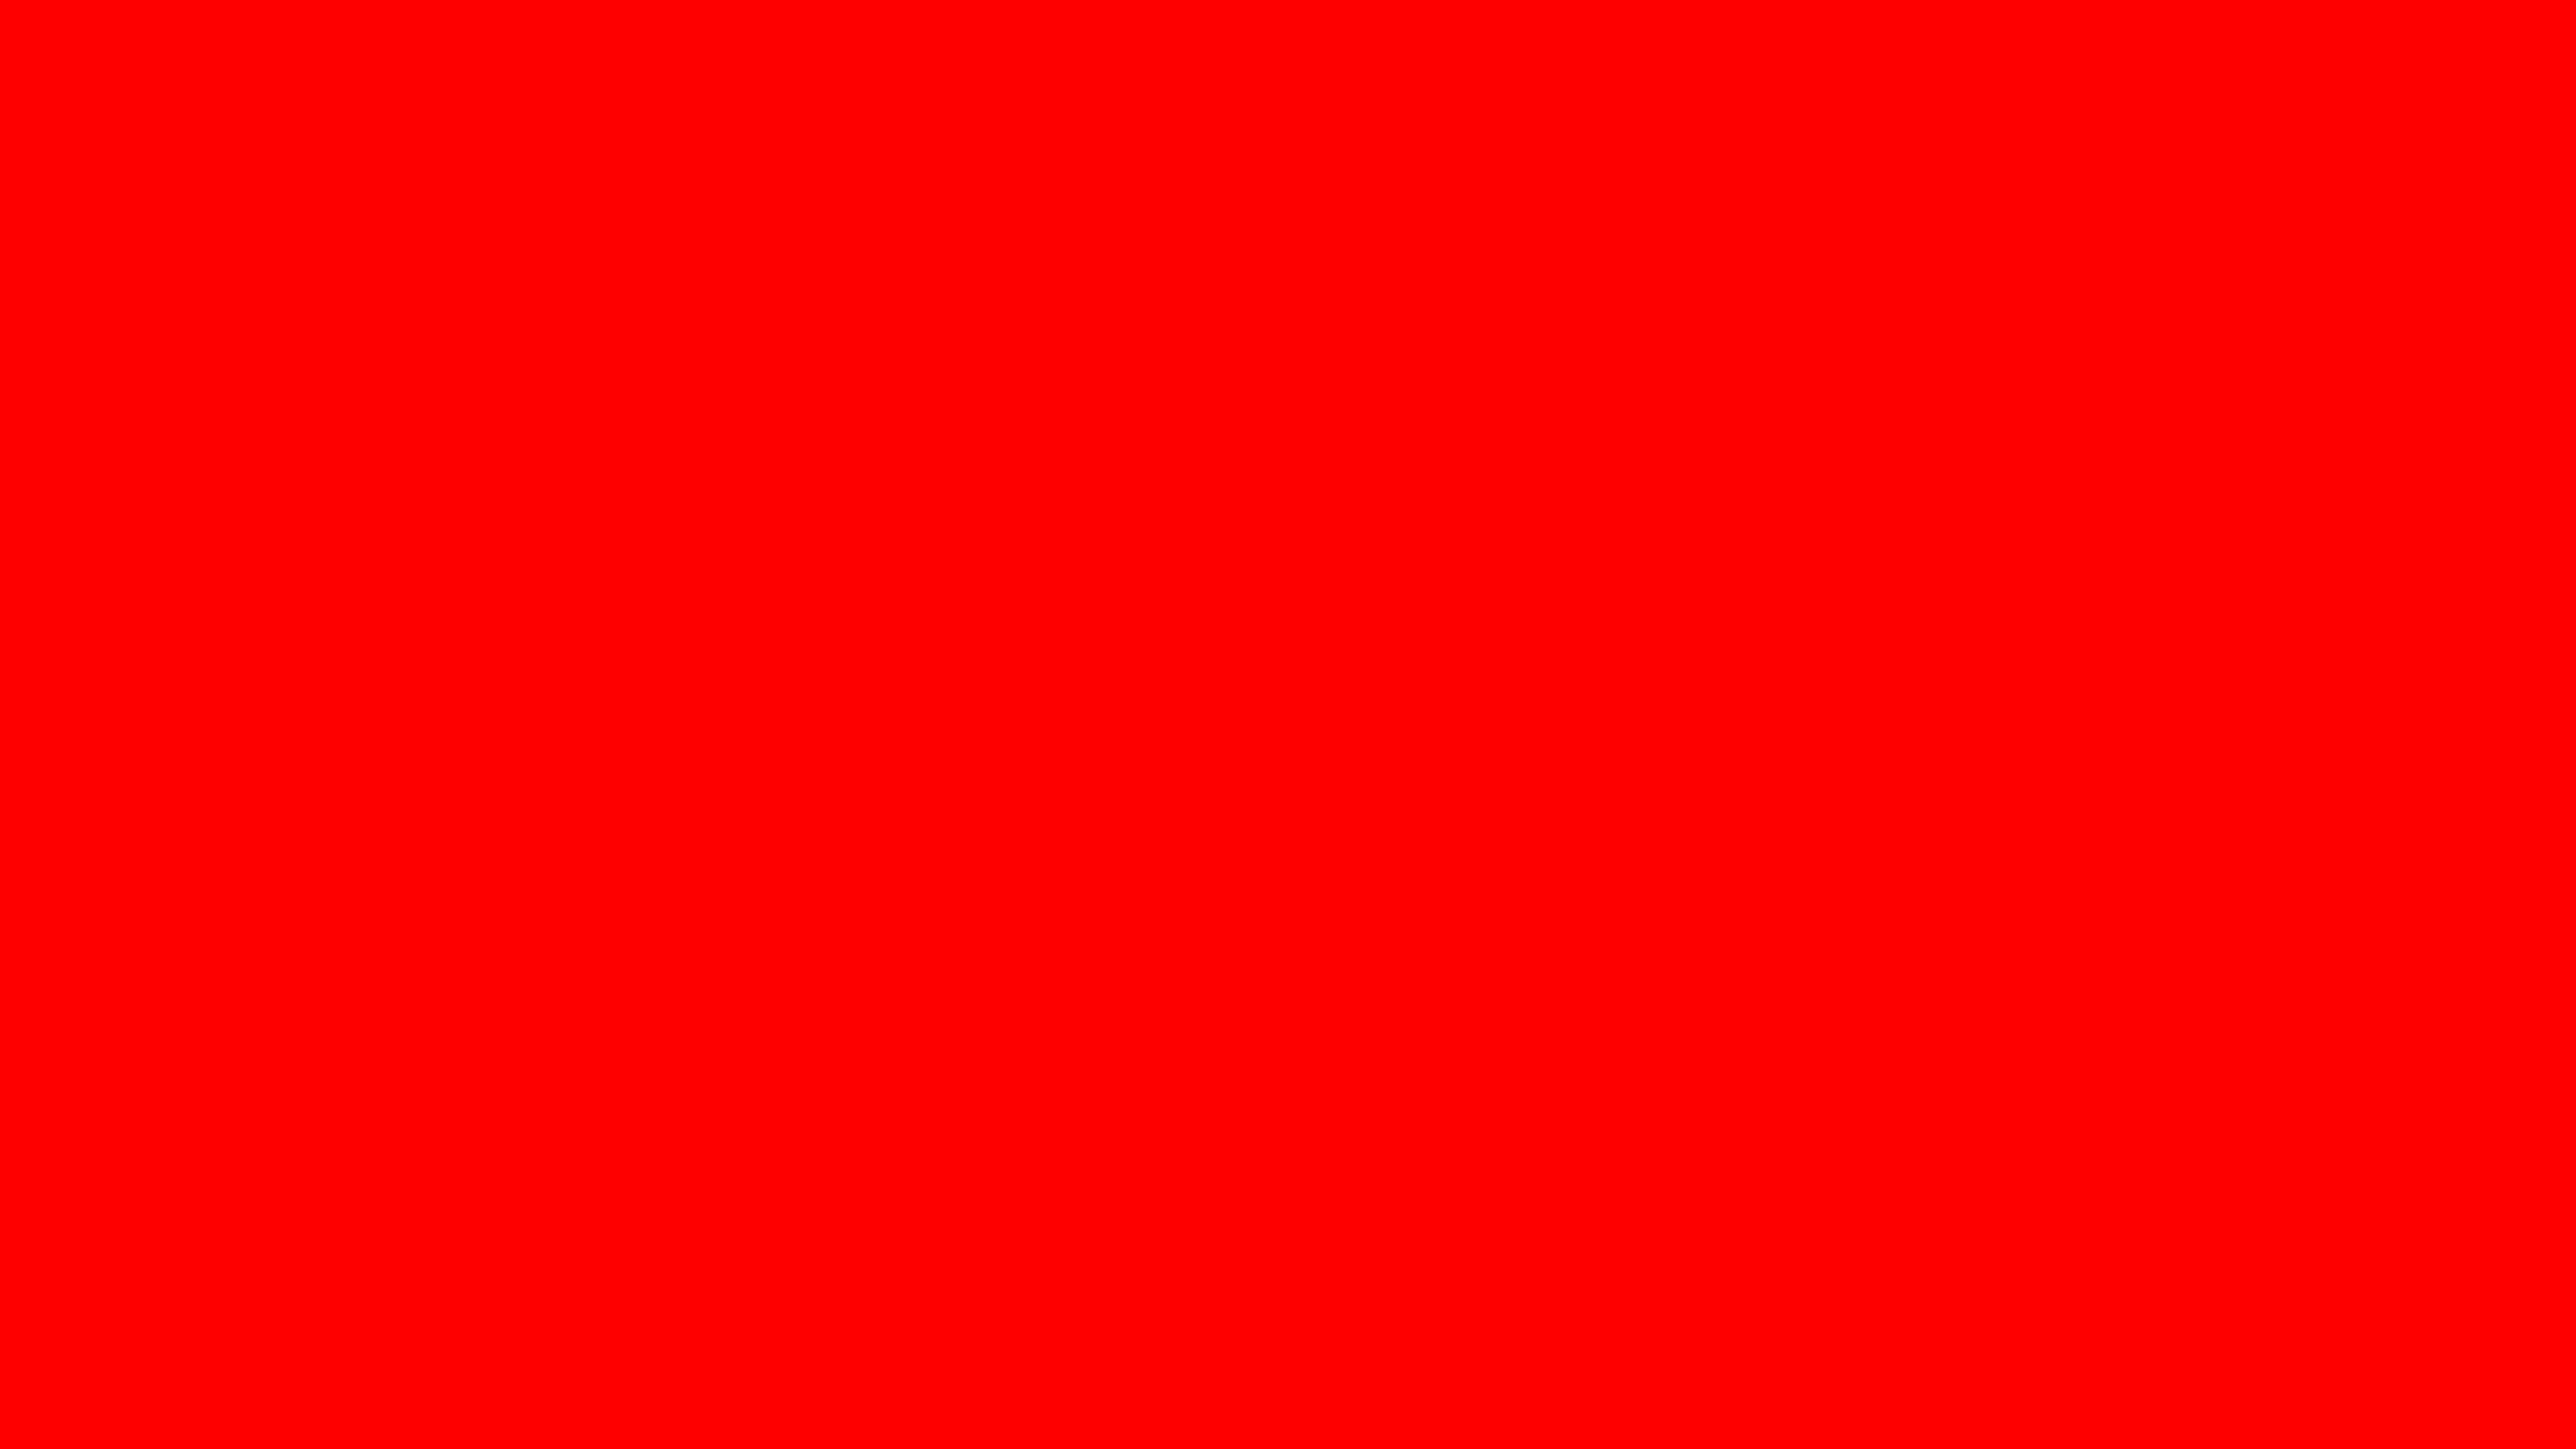 4096x2304 Red Solid Color Background